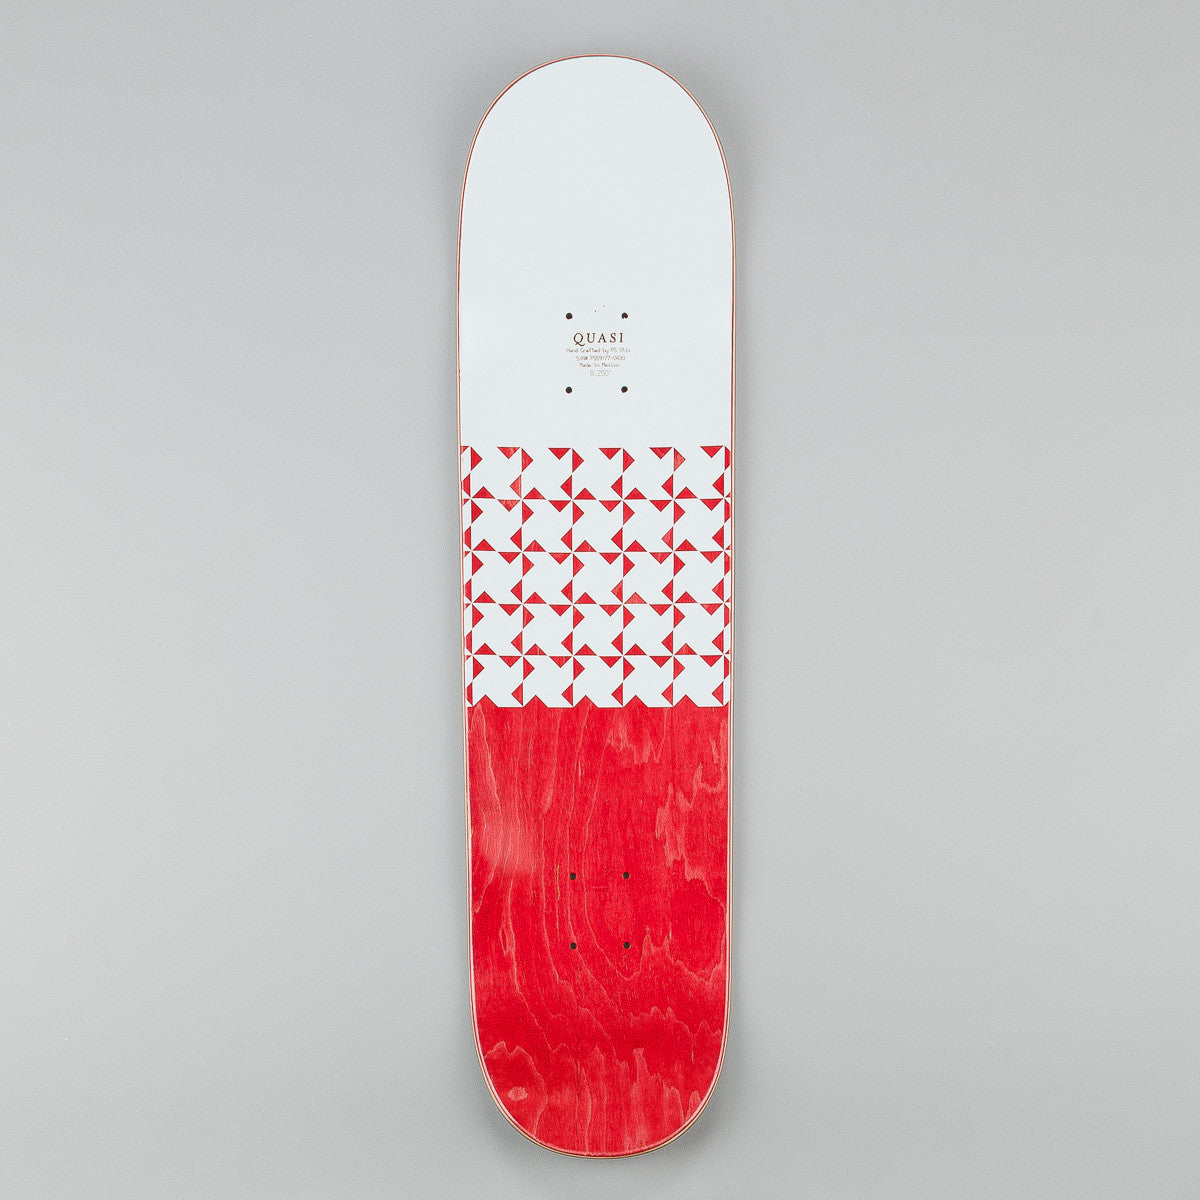 Quasi Skateboards Crockett 'Quilt' [One} Deck - Yellow - 8.25""